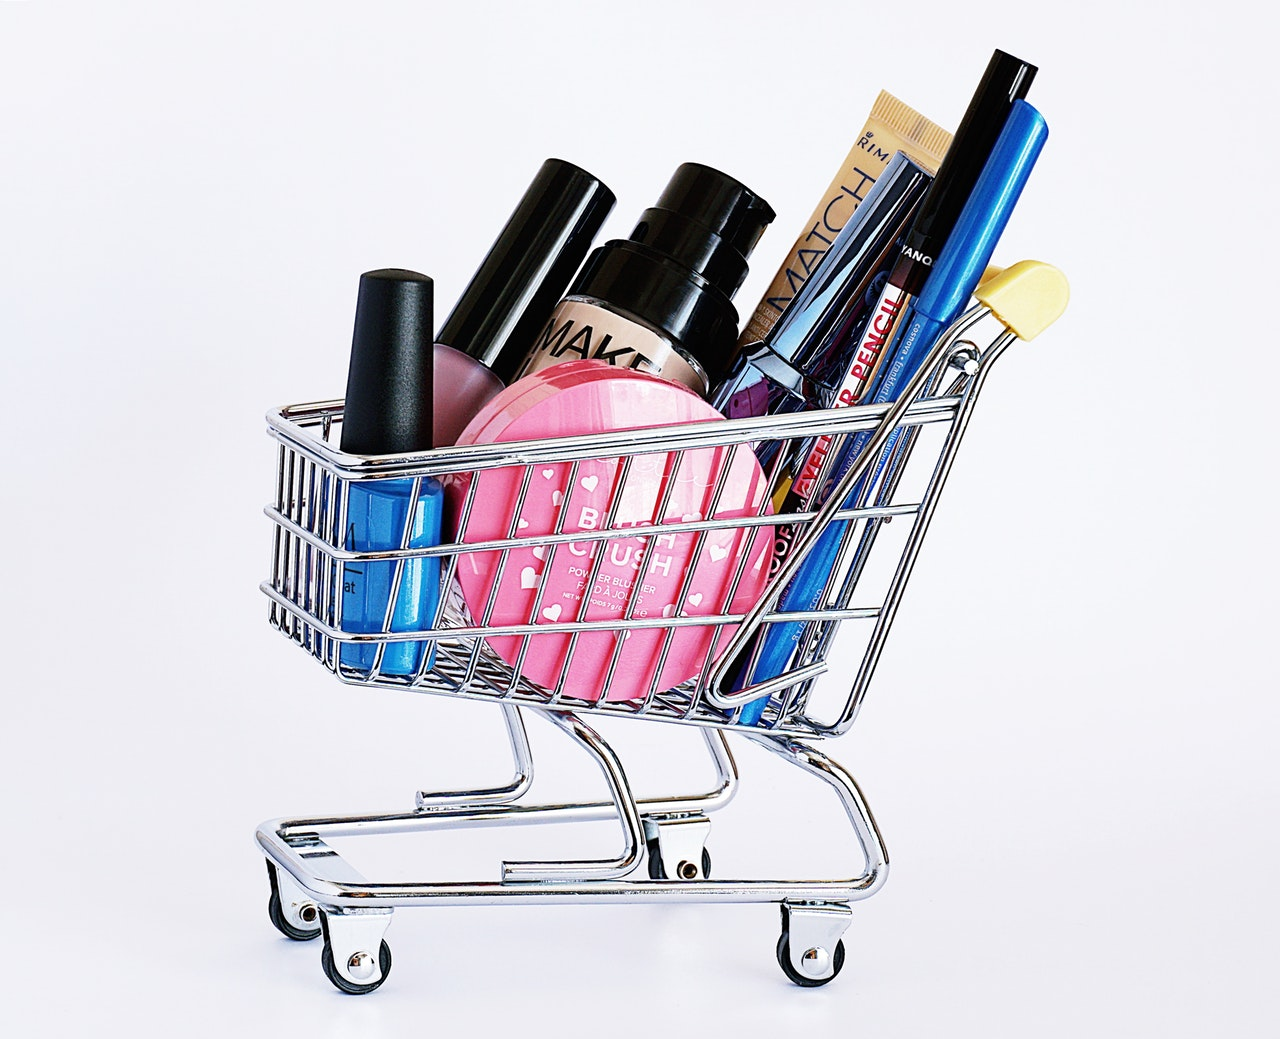 New Regulation introduced in Cosmetics Industry